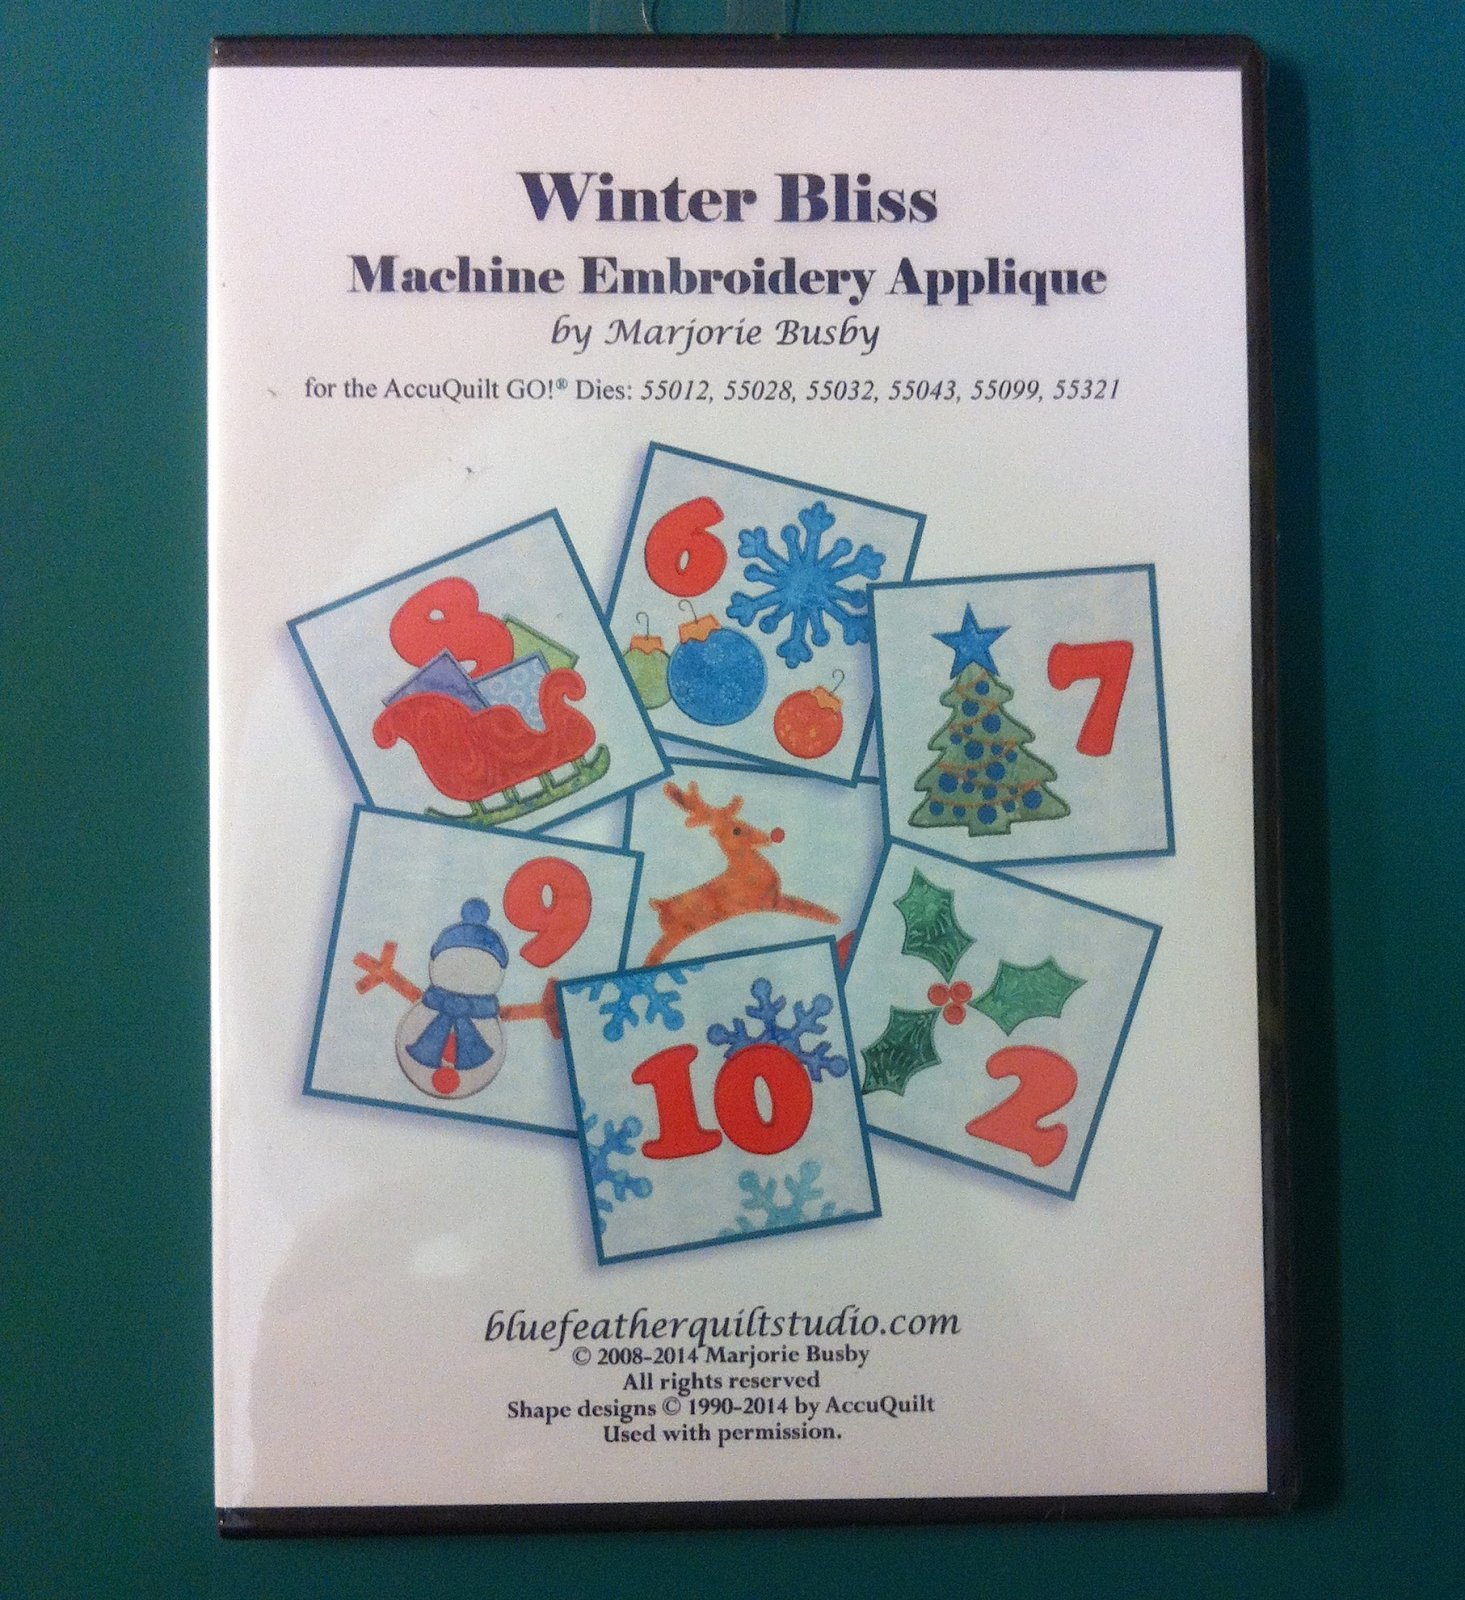 Winter Bliss Machine Embroidery Applique